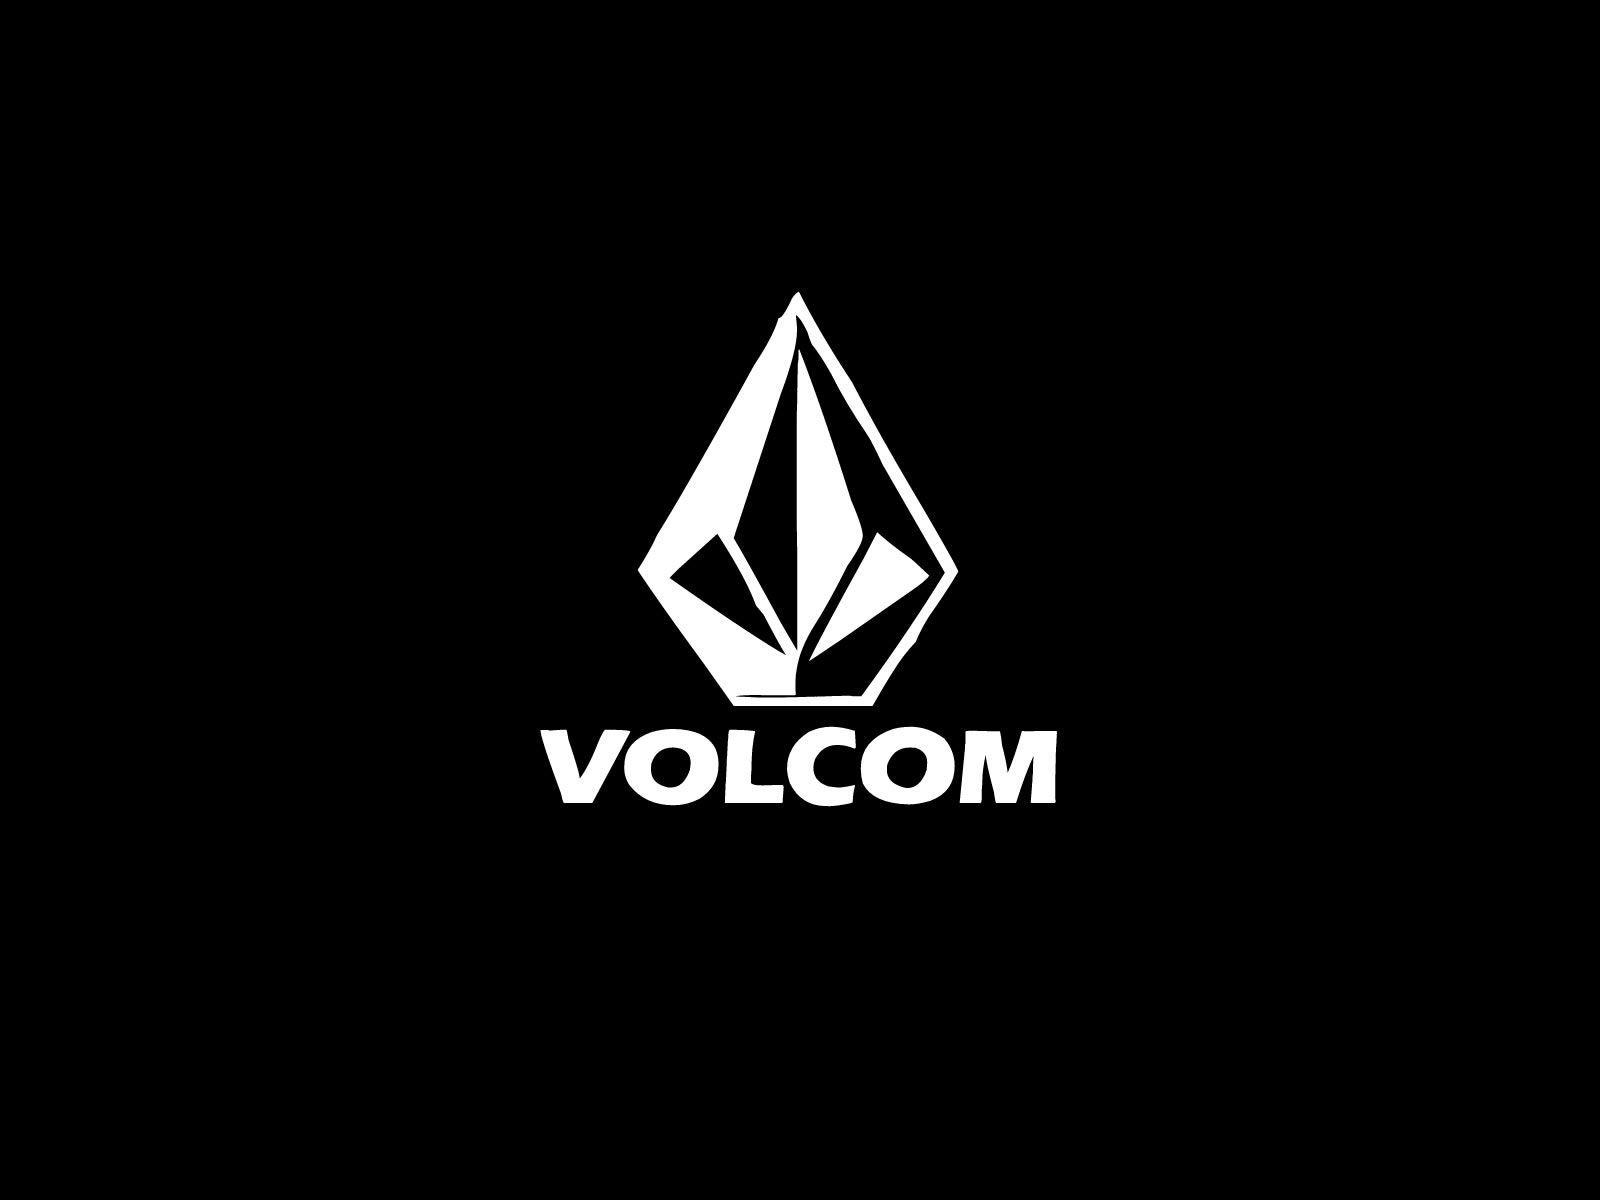 volcom logo wallpapers wallpaper cave